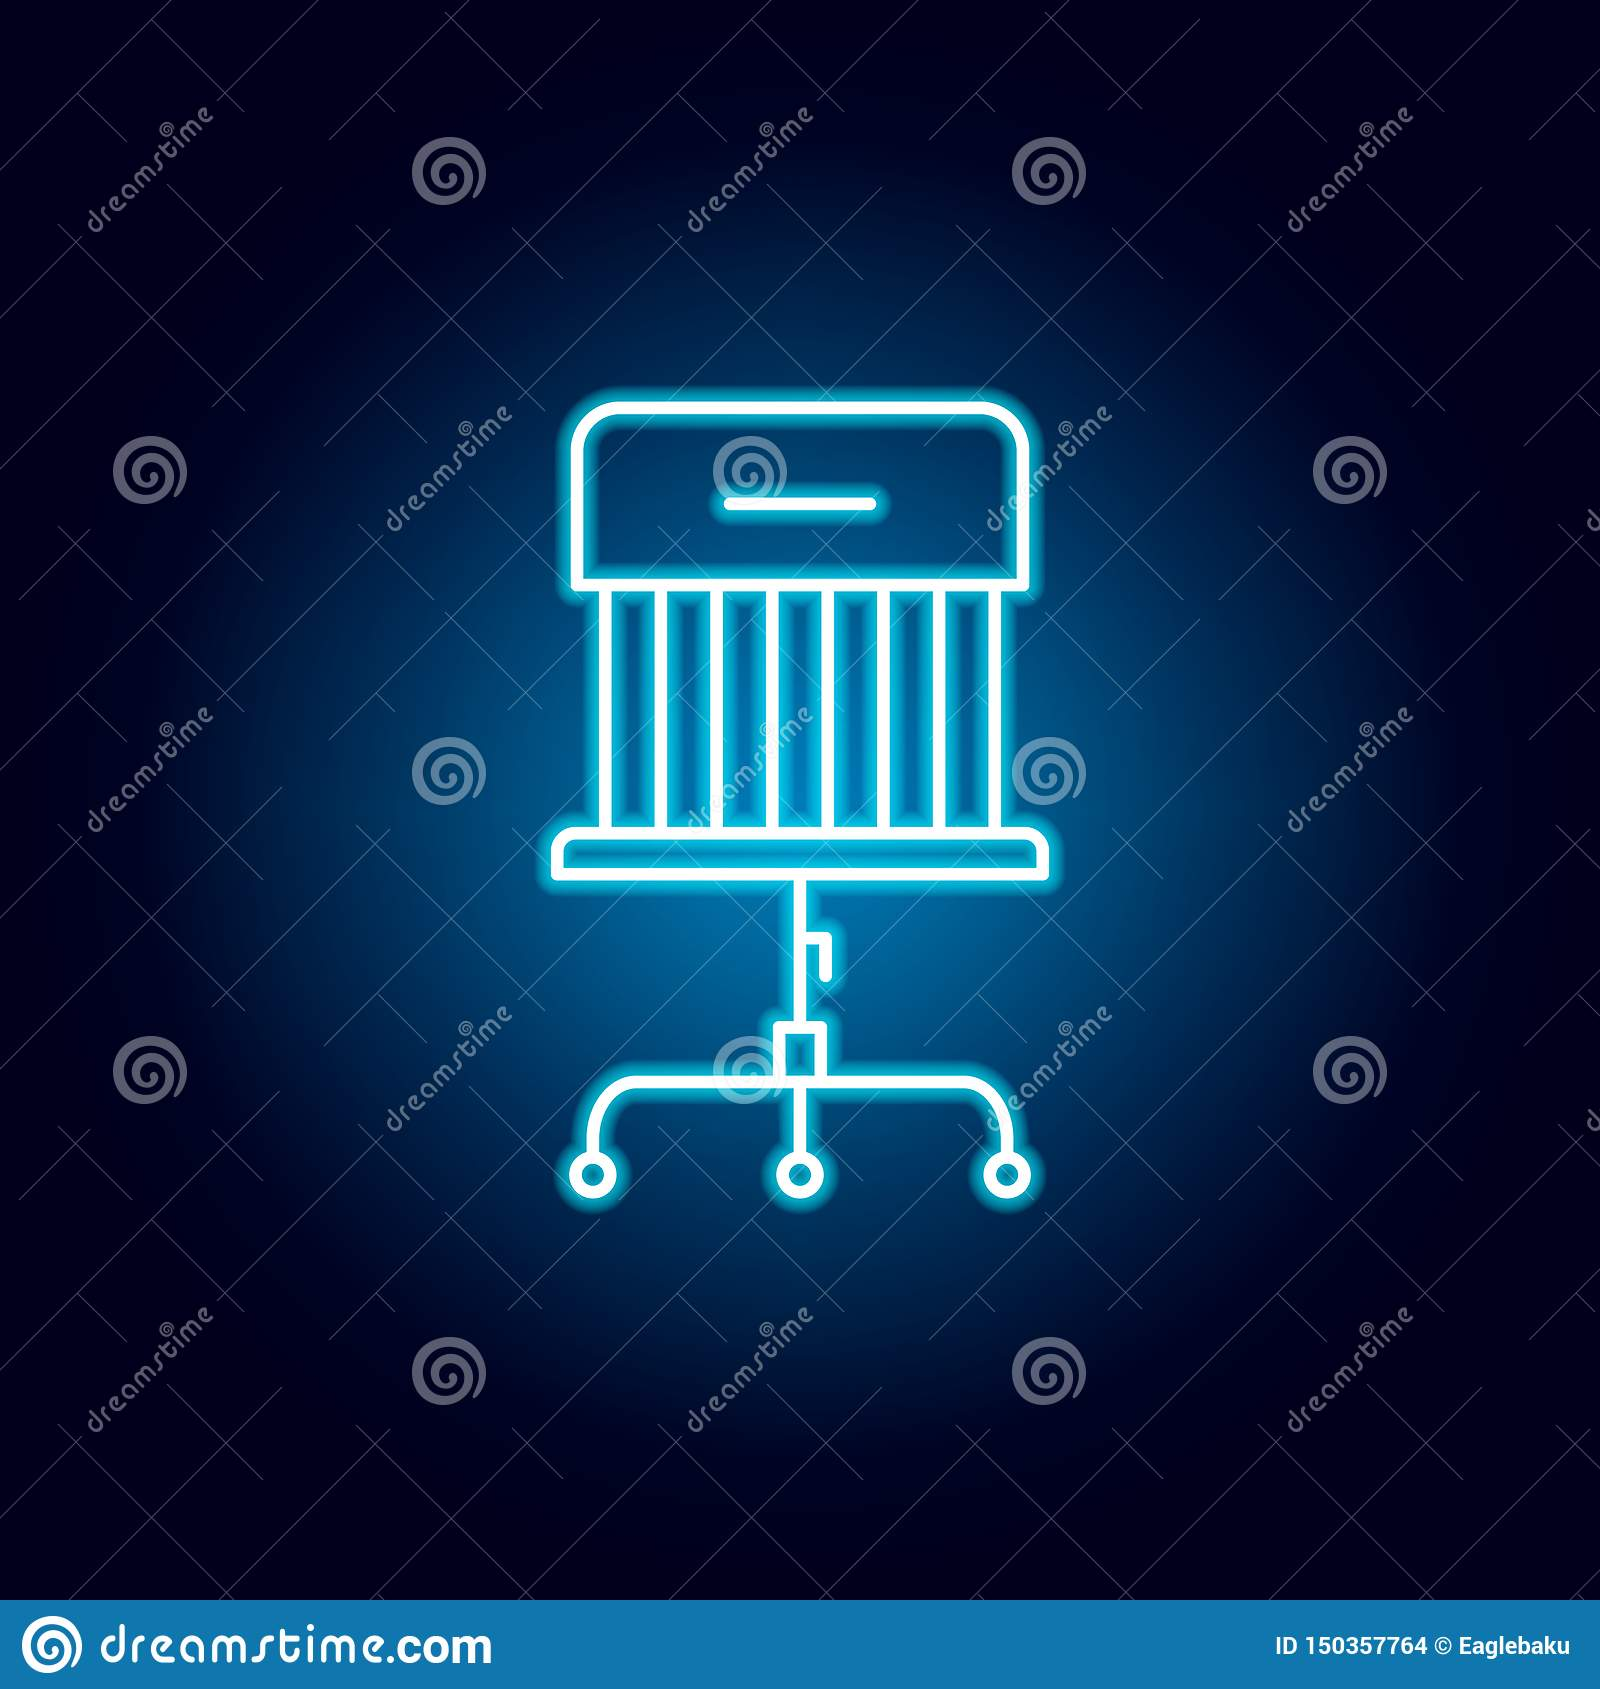 wheels, chair, office, furniture outline icon in neon style. signs and symbols can be used for web, logo, mobile app, UI, UX